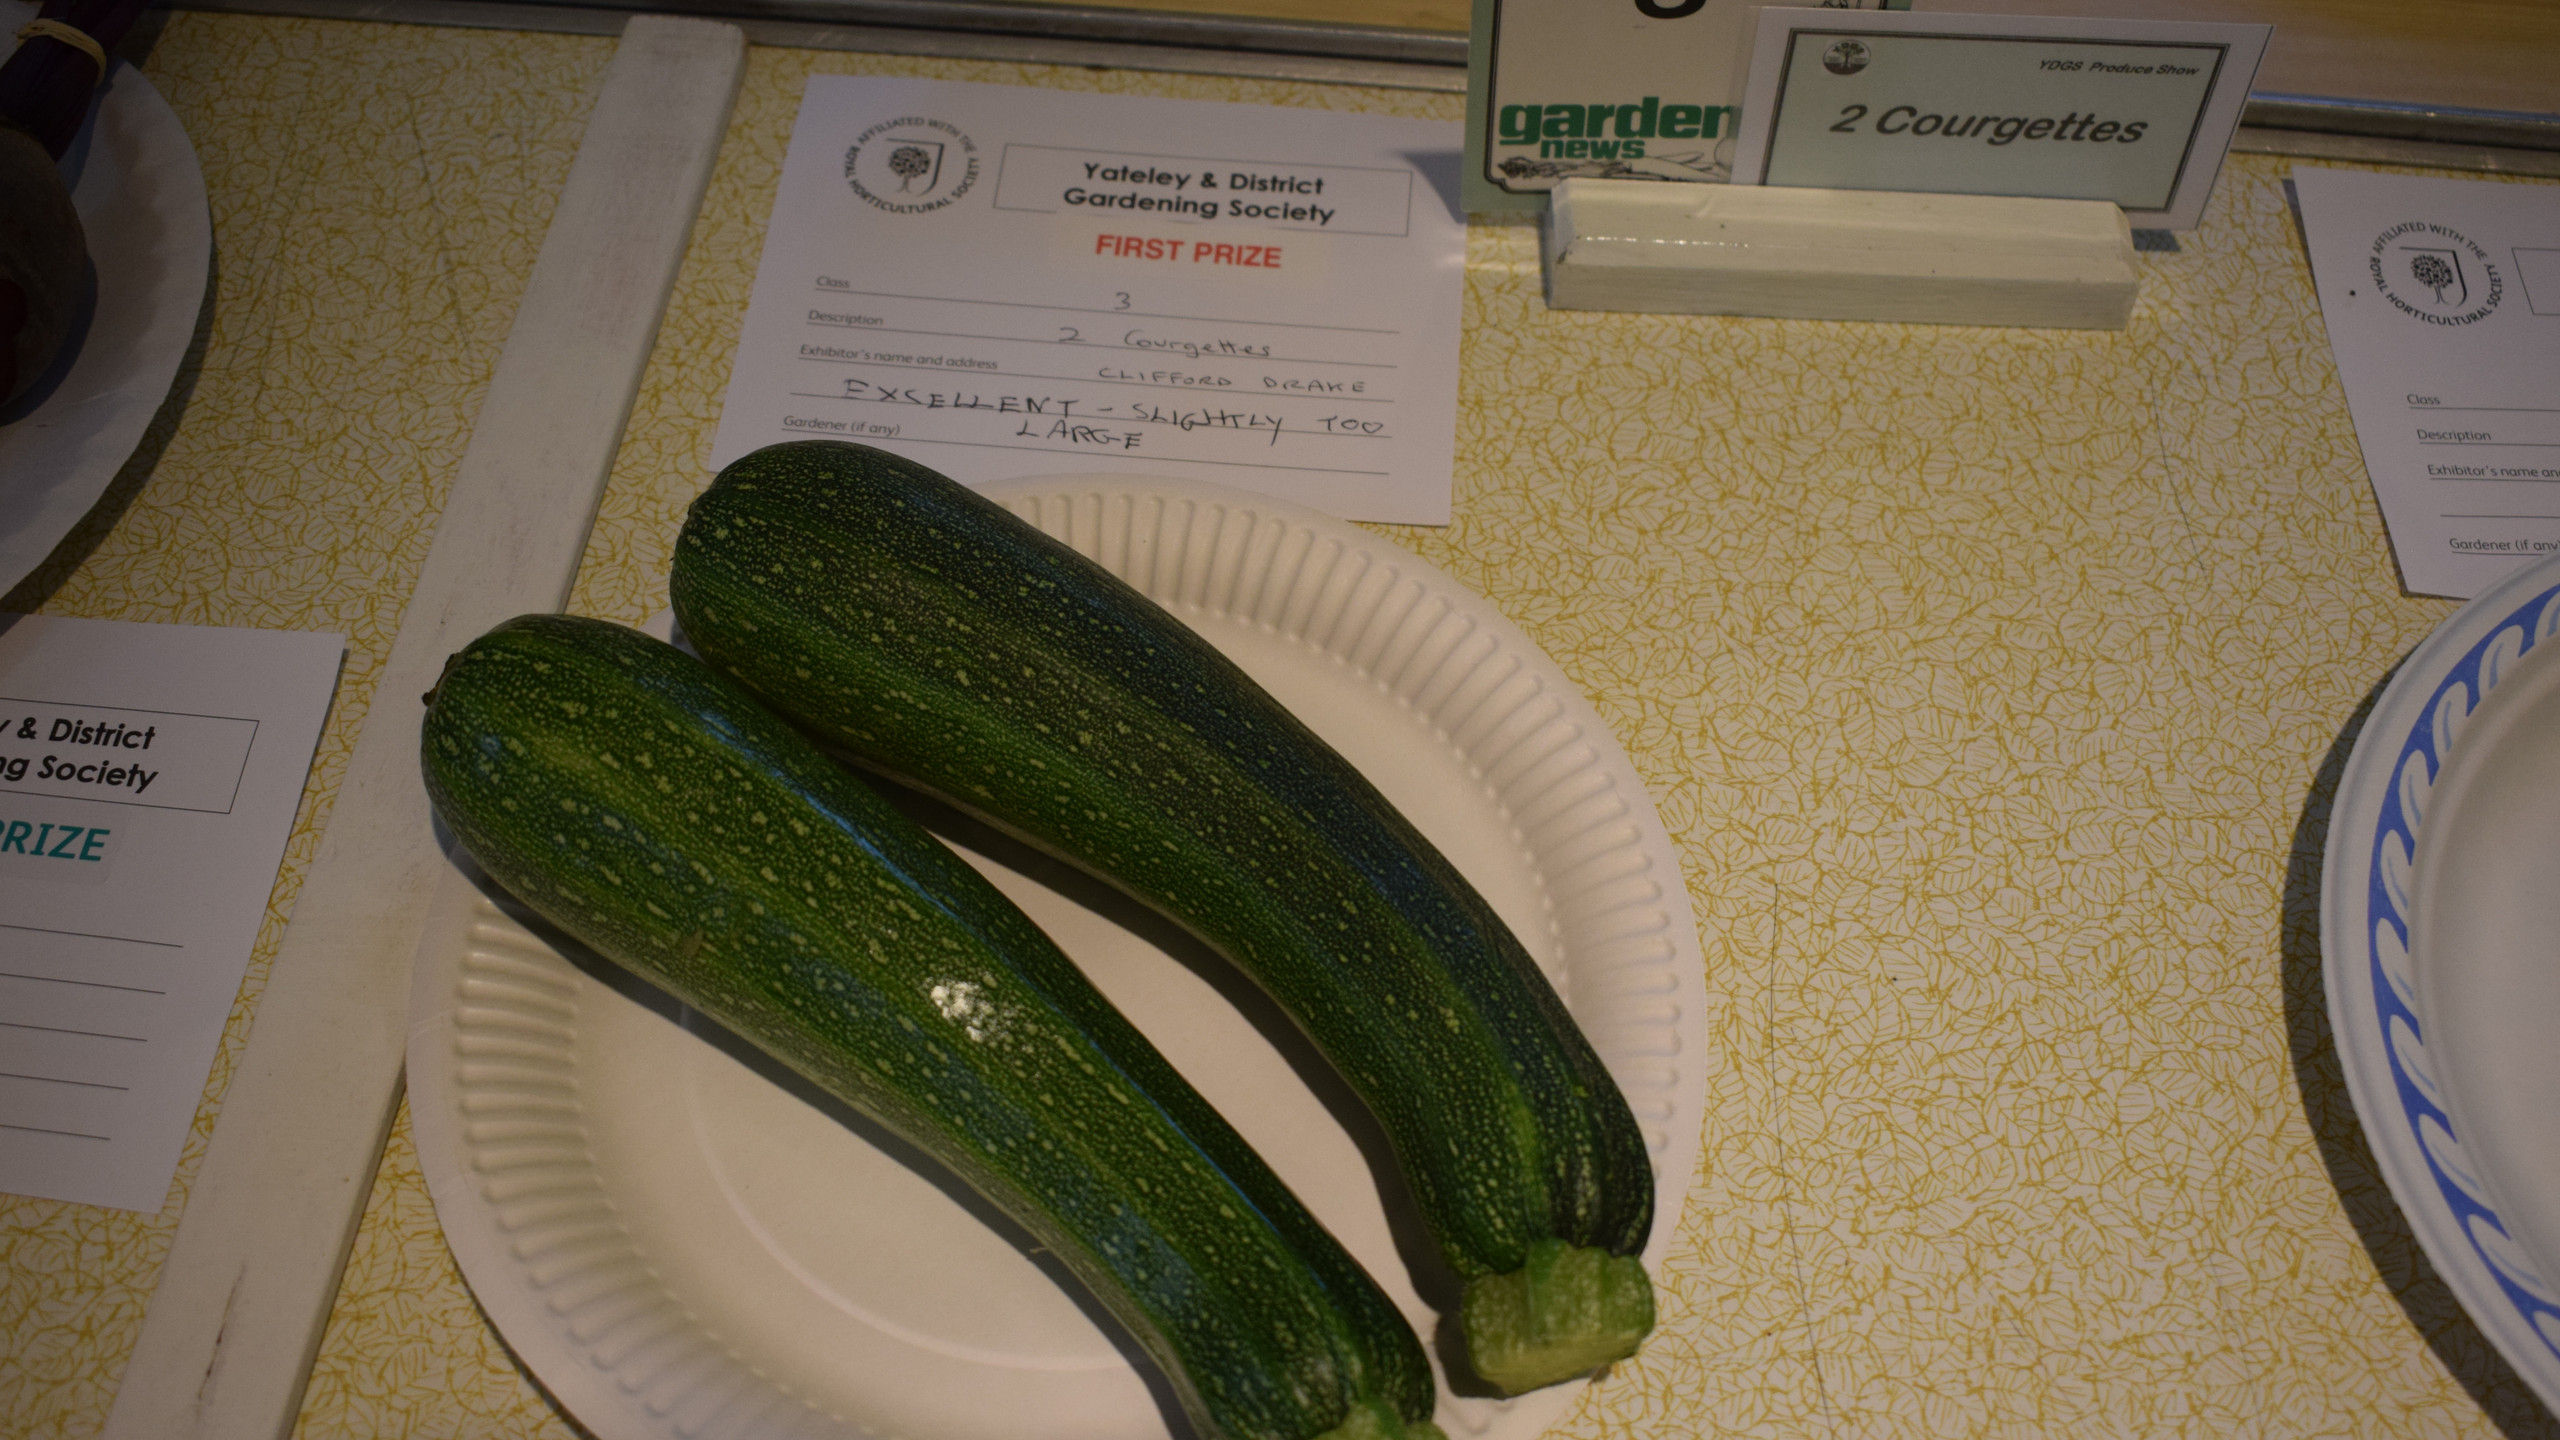 1st prize for 2 courgettes